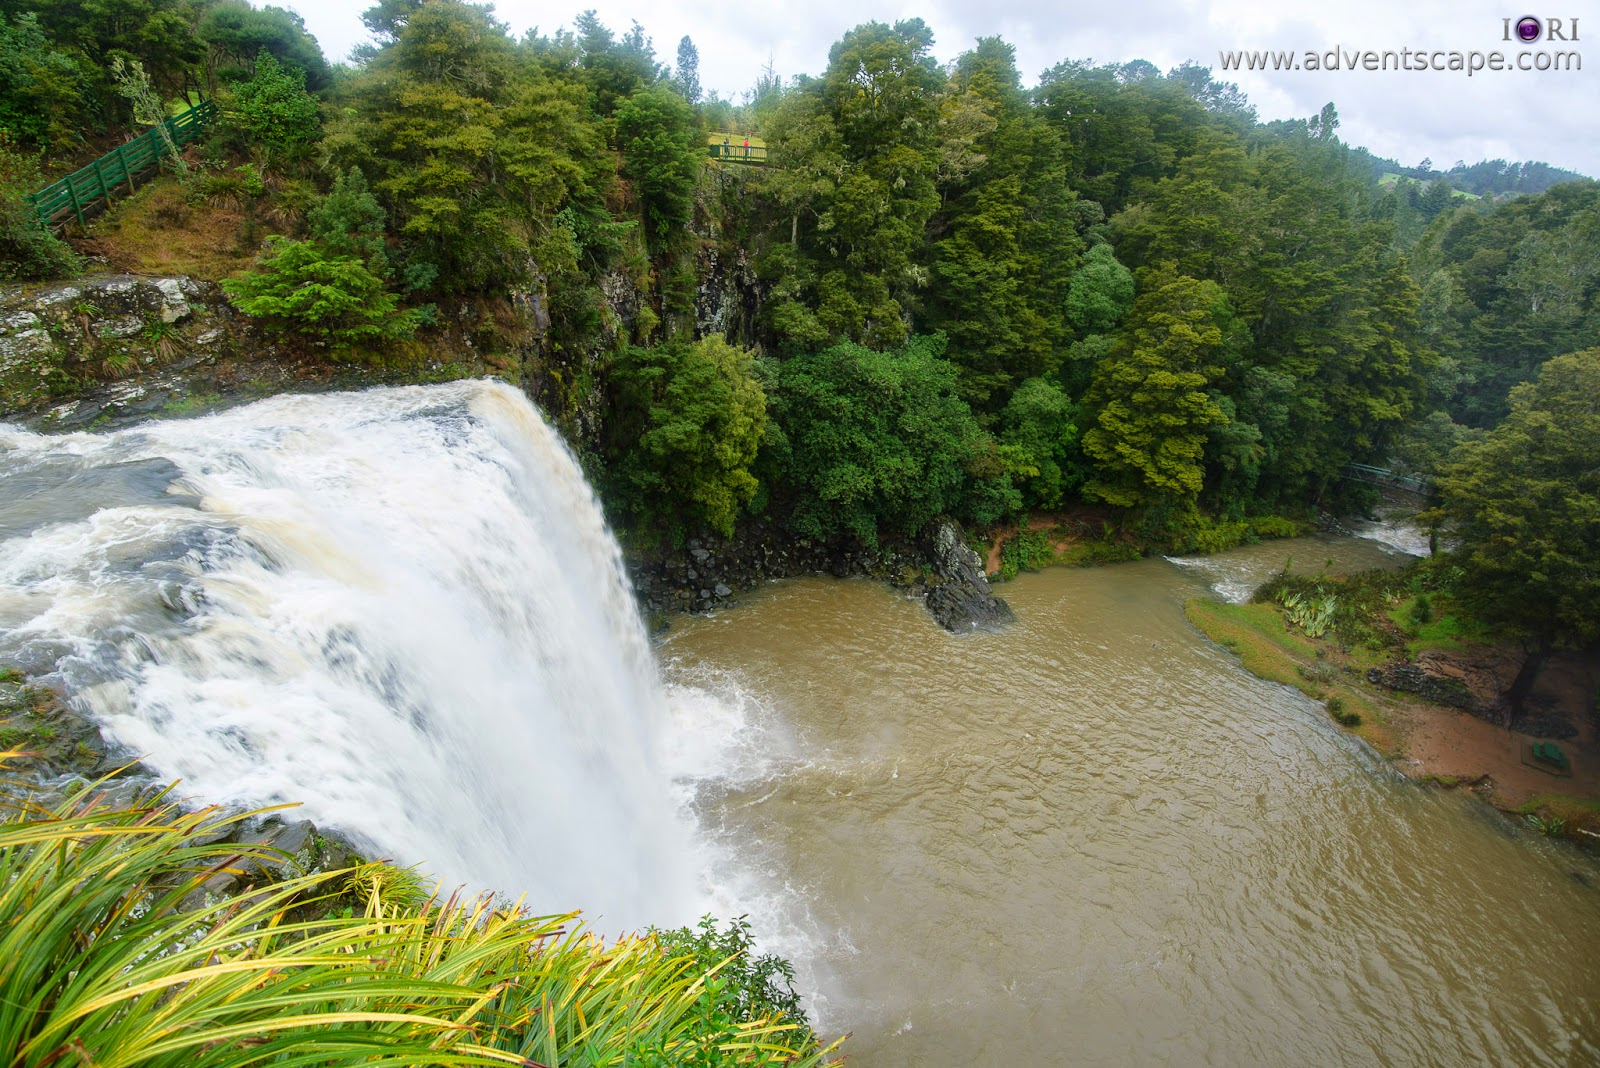 Philip Avellana, adventscape, iori, Whangarei falls, waterfalls, North Island, New Zealand, travel, tour, places to visit, landscape, nature photos, vantage point